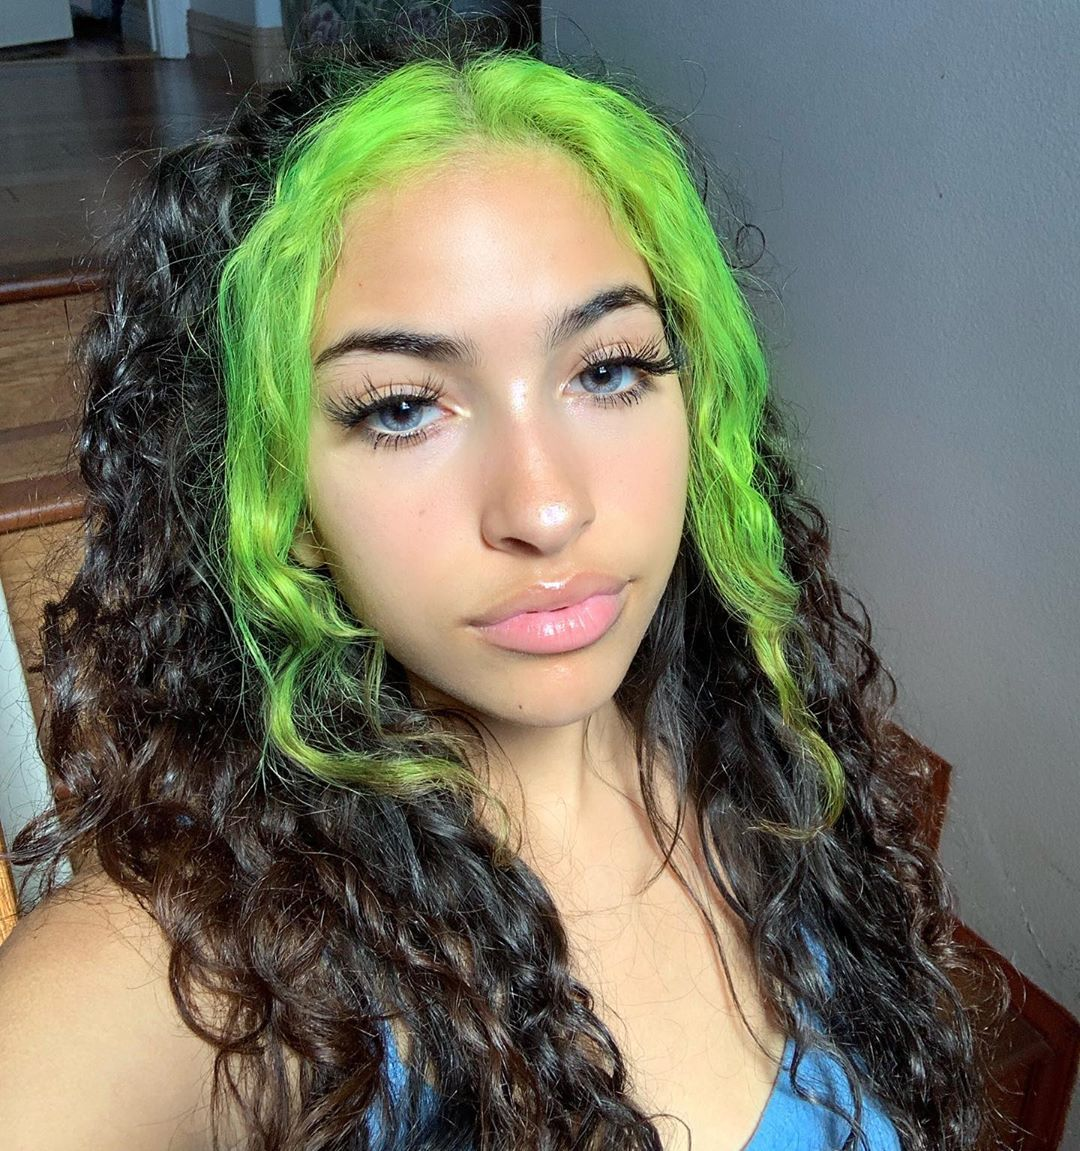 Neon Green Highlights Dyed Curly Hair Hair Color Streaks Green Hair Streaks